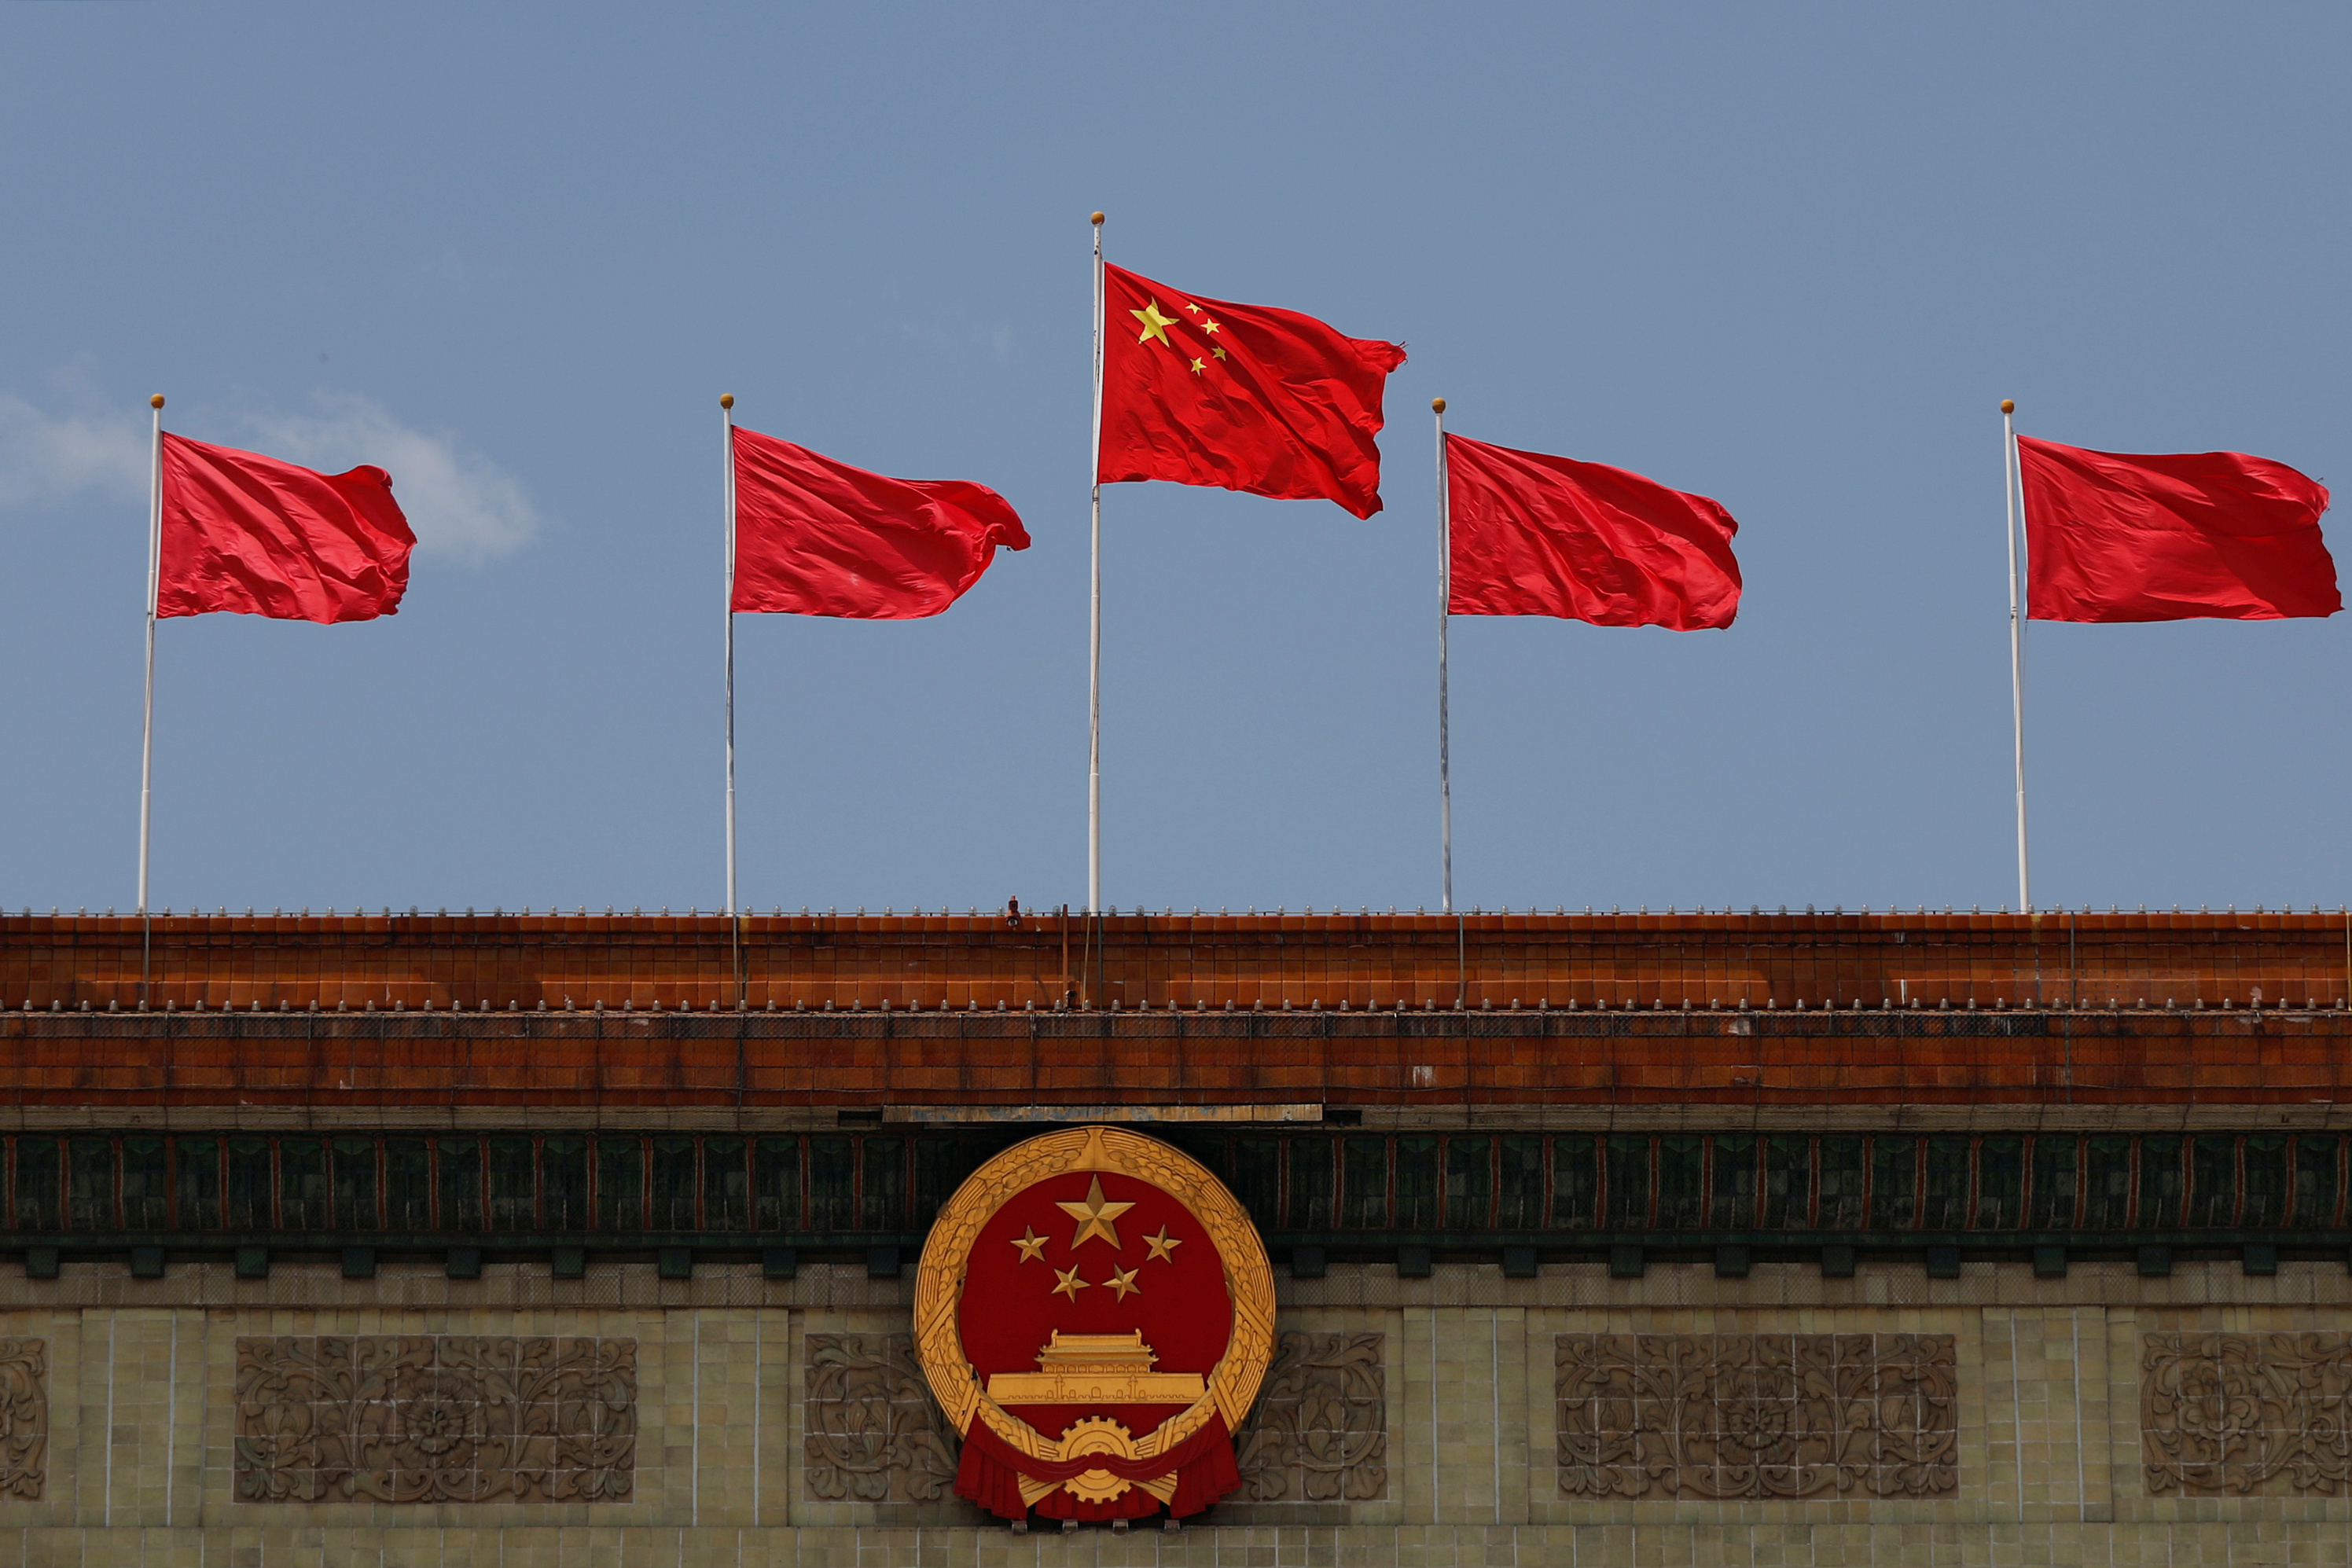 A Chinese flag flutters above the Chinese national emblem at the Great Hall of the People after the opening session of the National People's Congress (NPC) in Beijing, China May 22, 2020. REUTERS/Carlos Garcia Rawlins